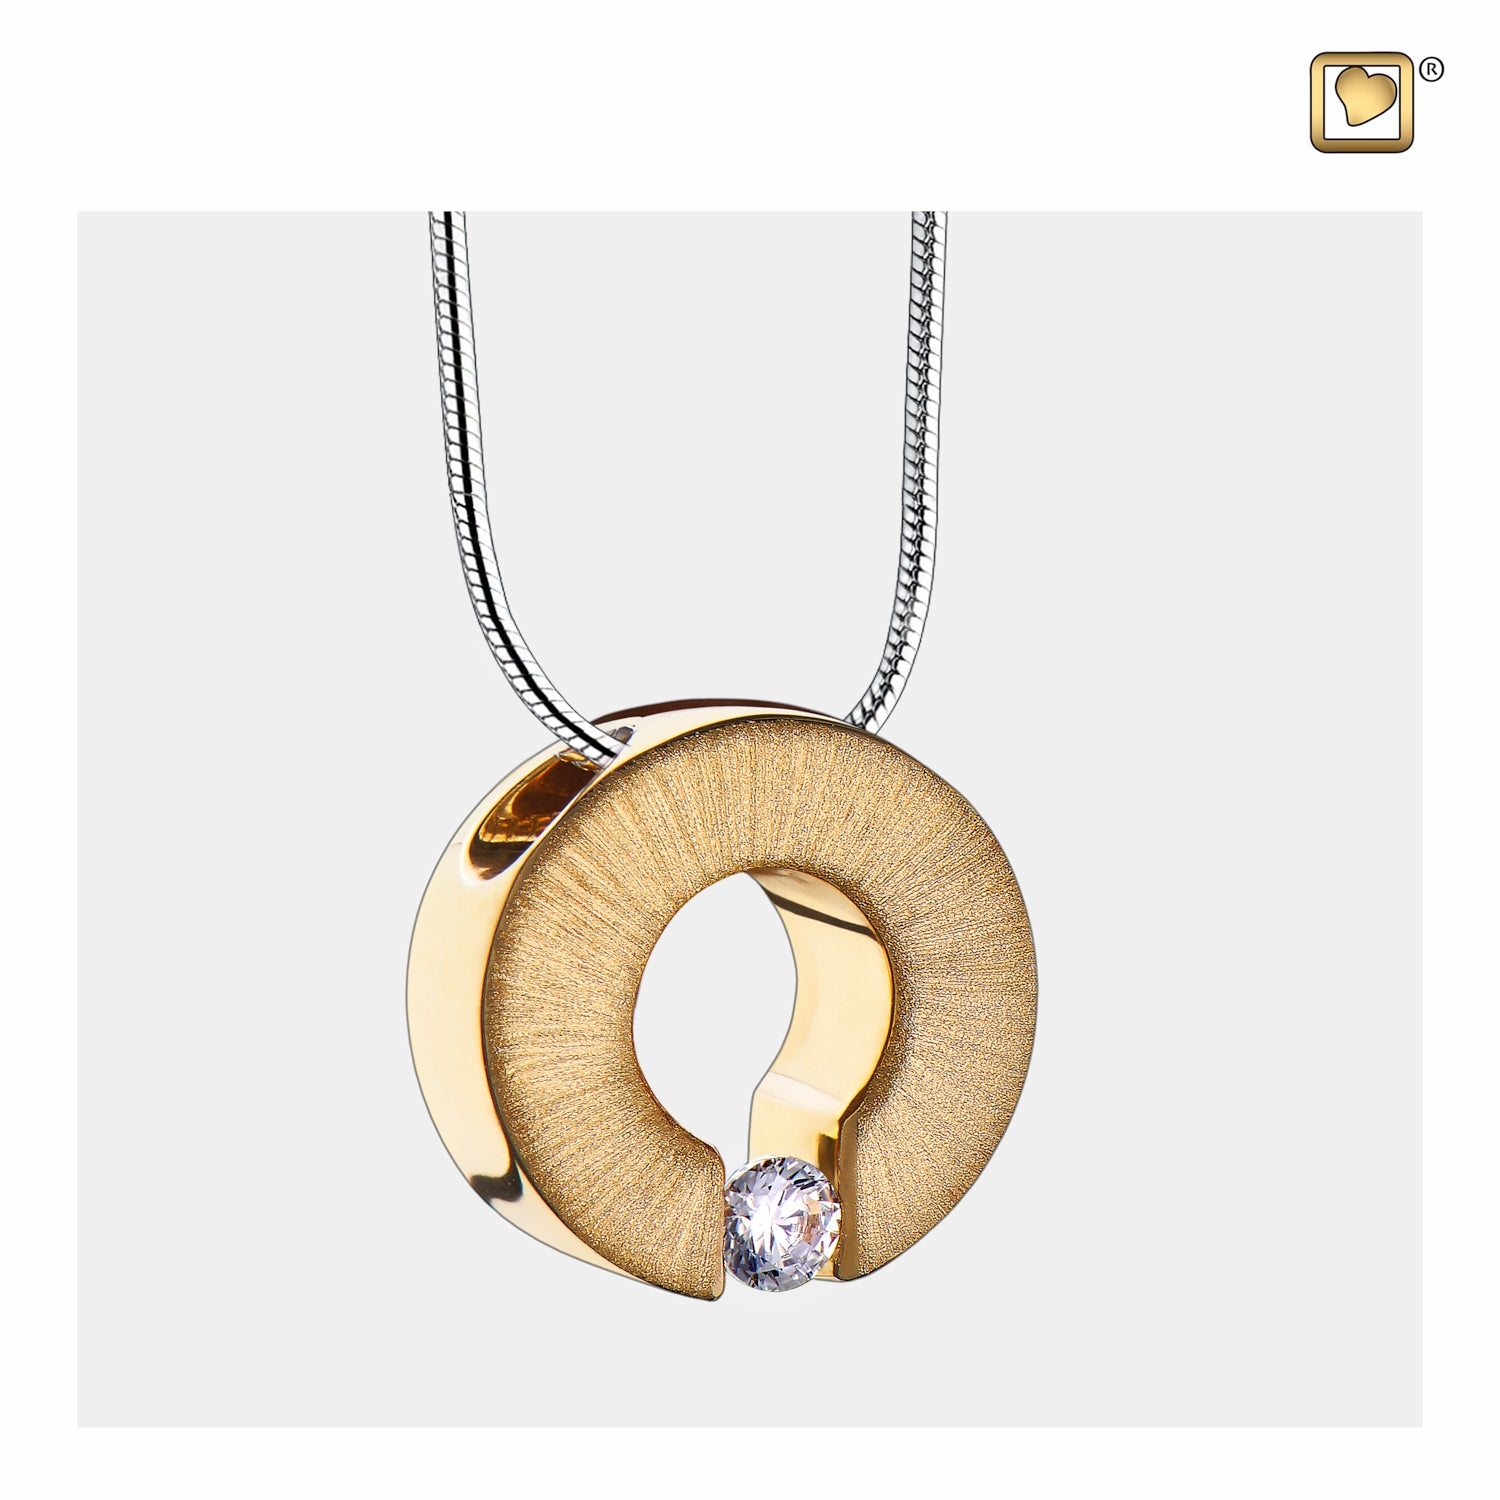 Sterling Silver Omega Gold Vermeil Two Tone with Clear Crystal Cremation Jewelry for Ashes - Pendant